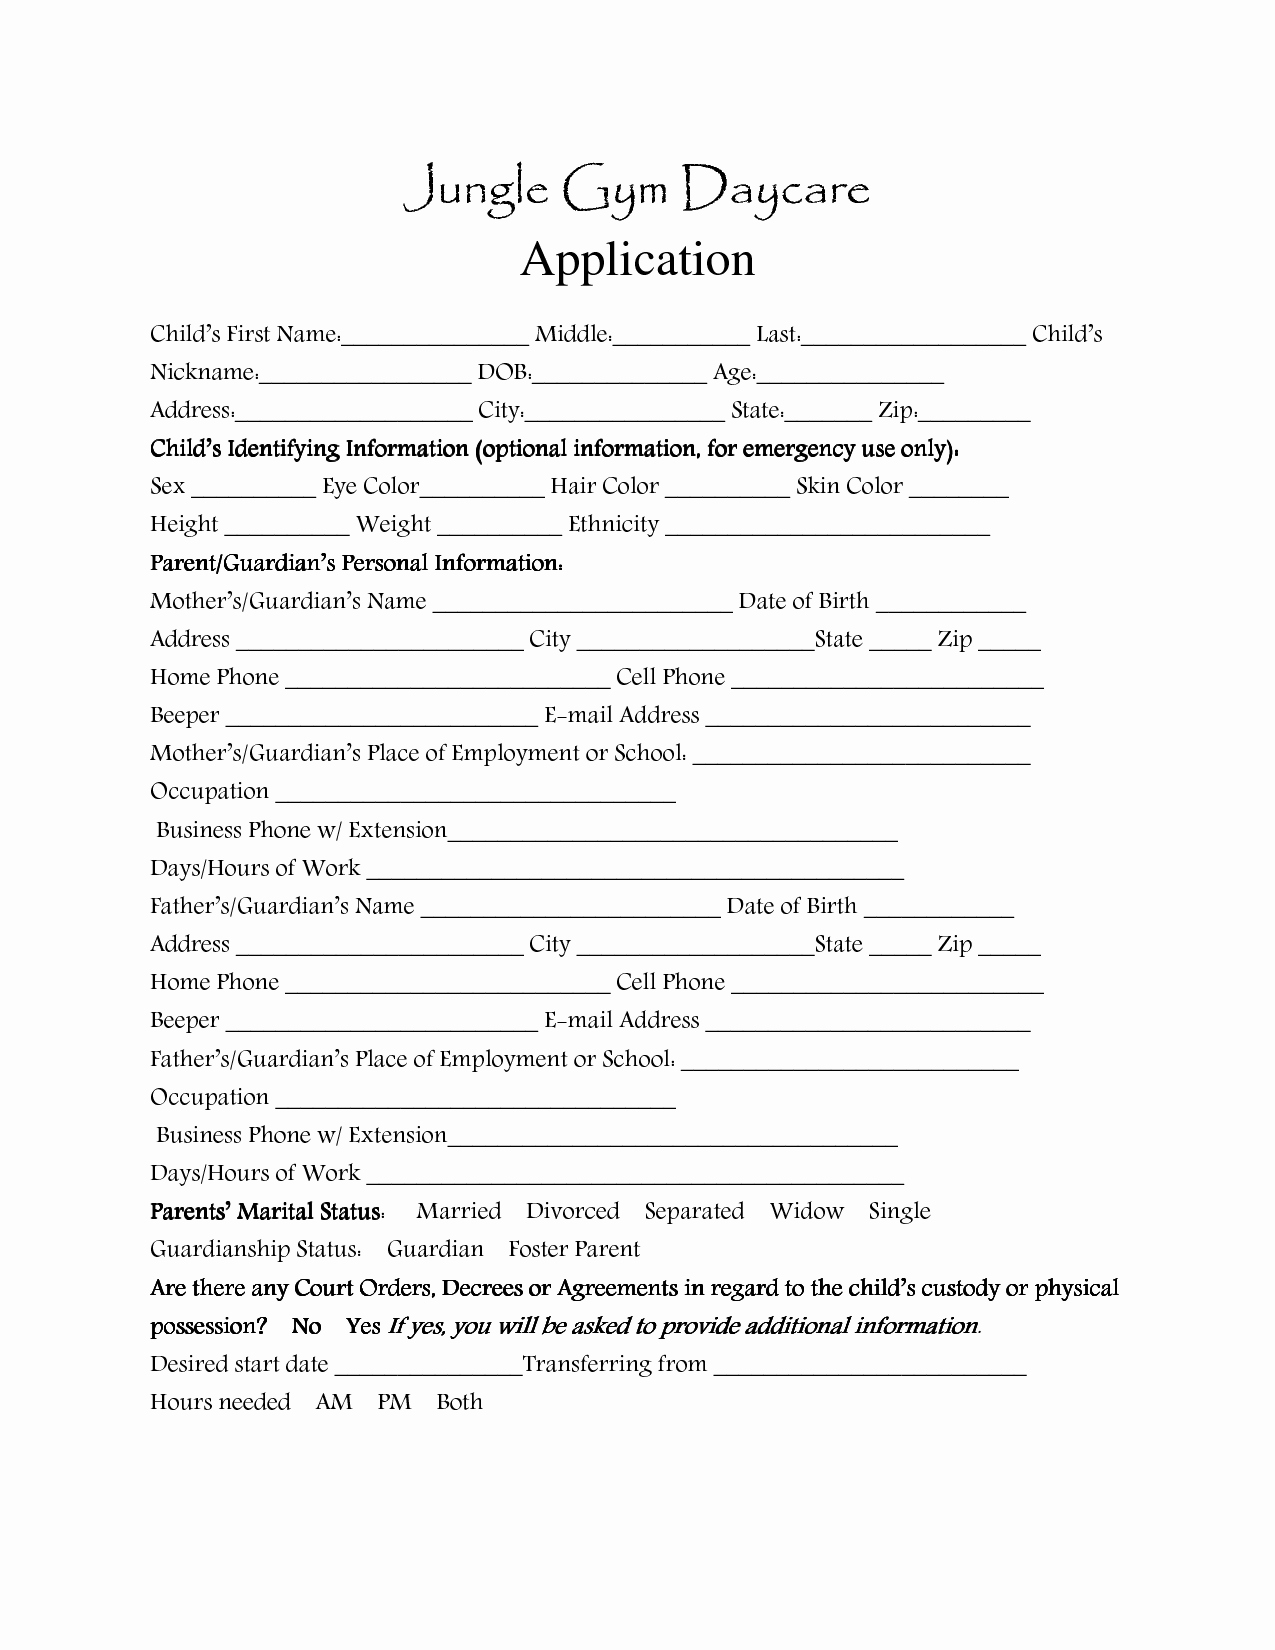 Child Care Application Template Inspirational Day Care Application forms Template Daycare